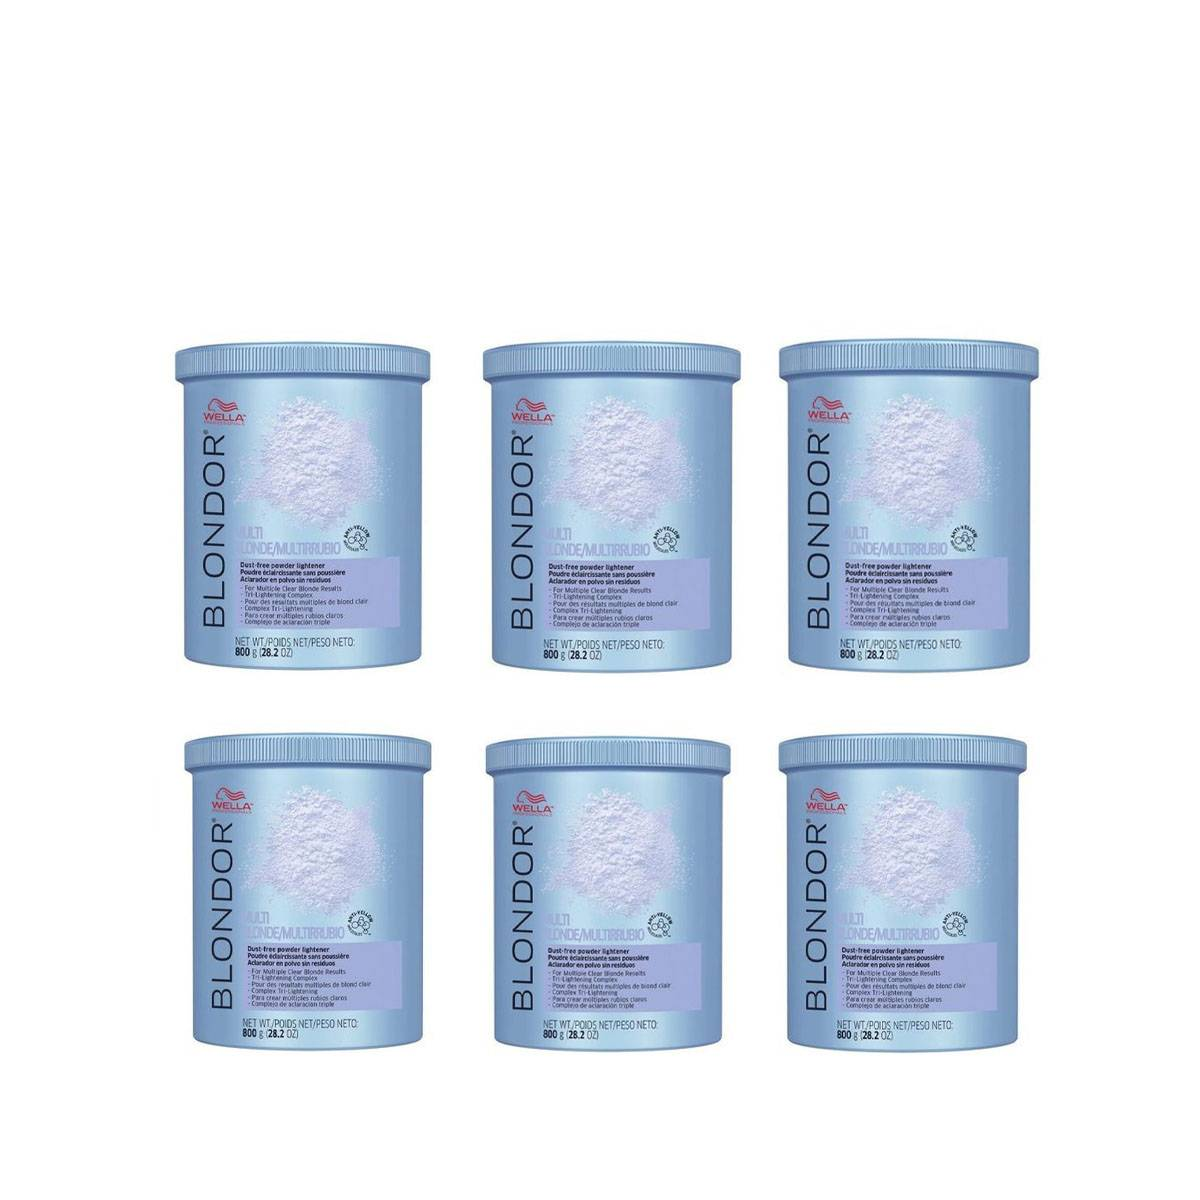 Kit 6 X Blondor Powder 800 Gr